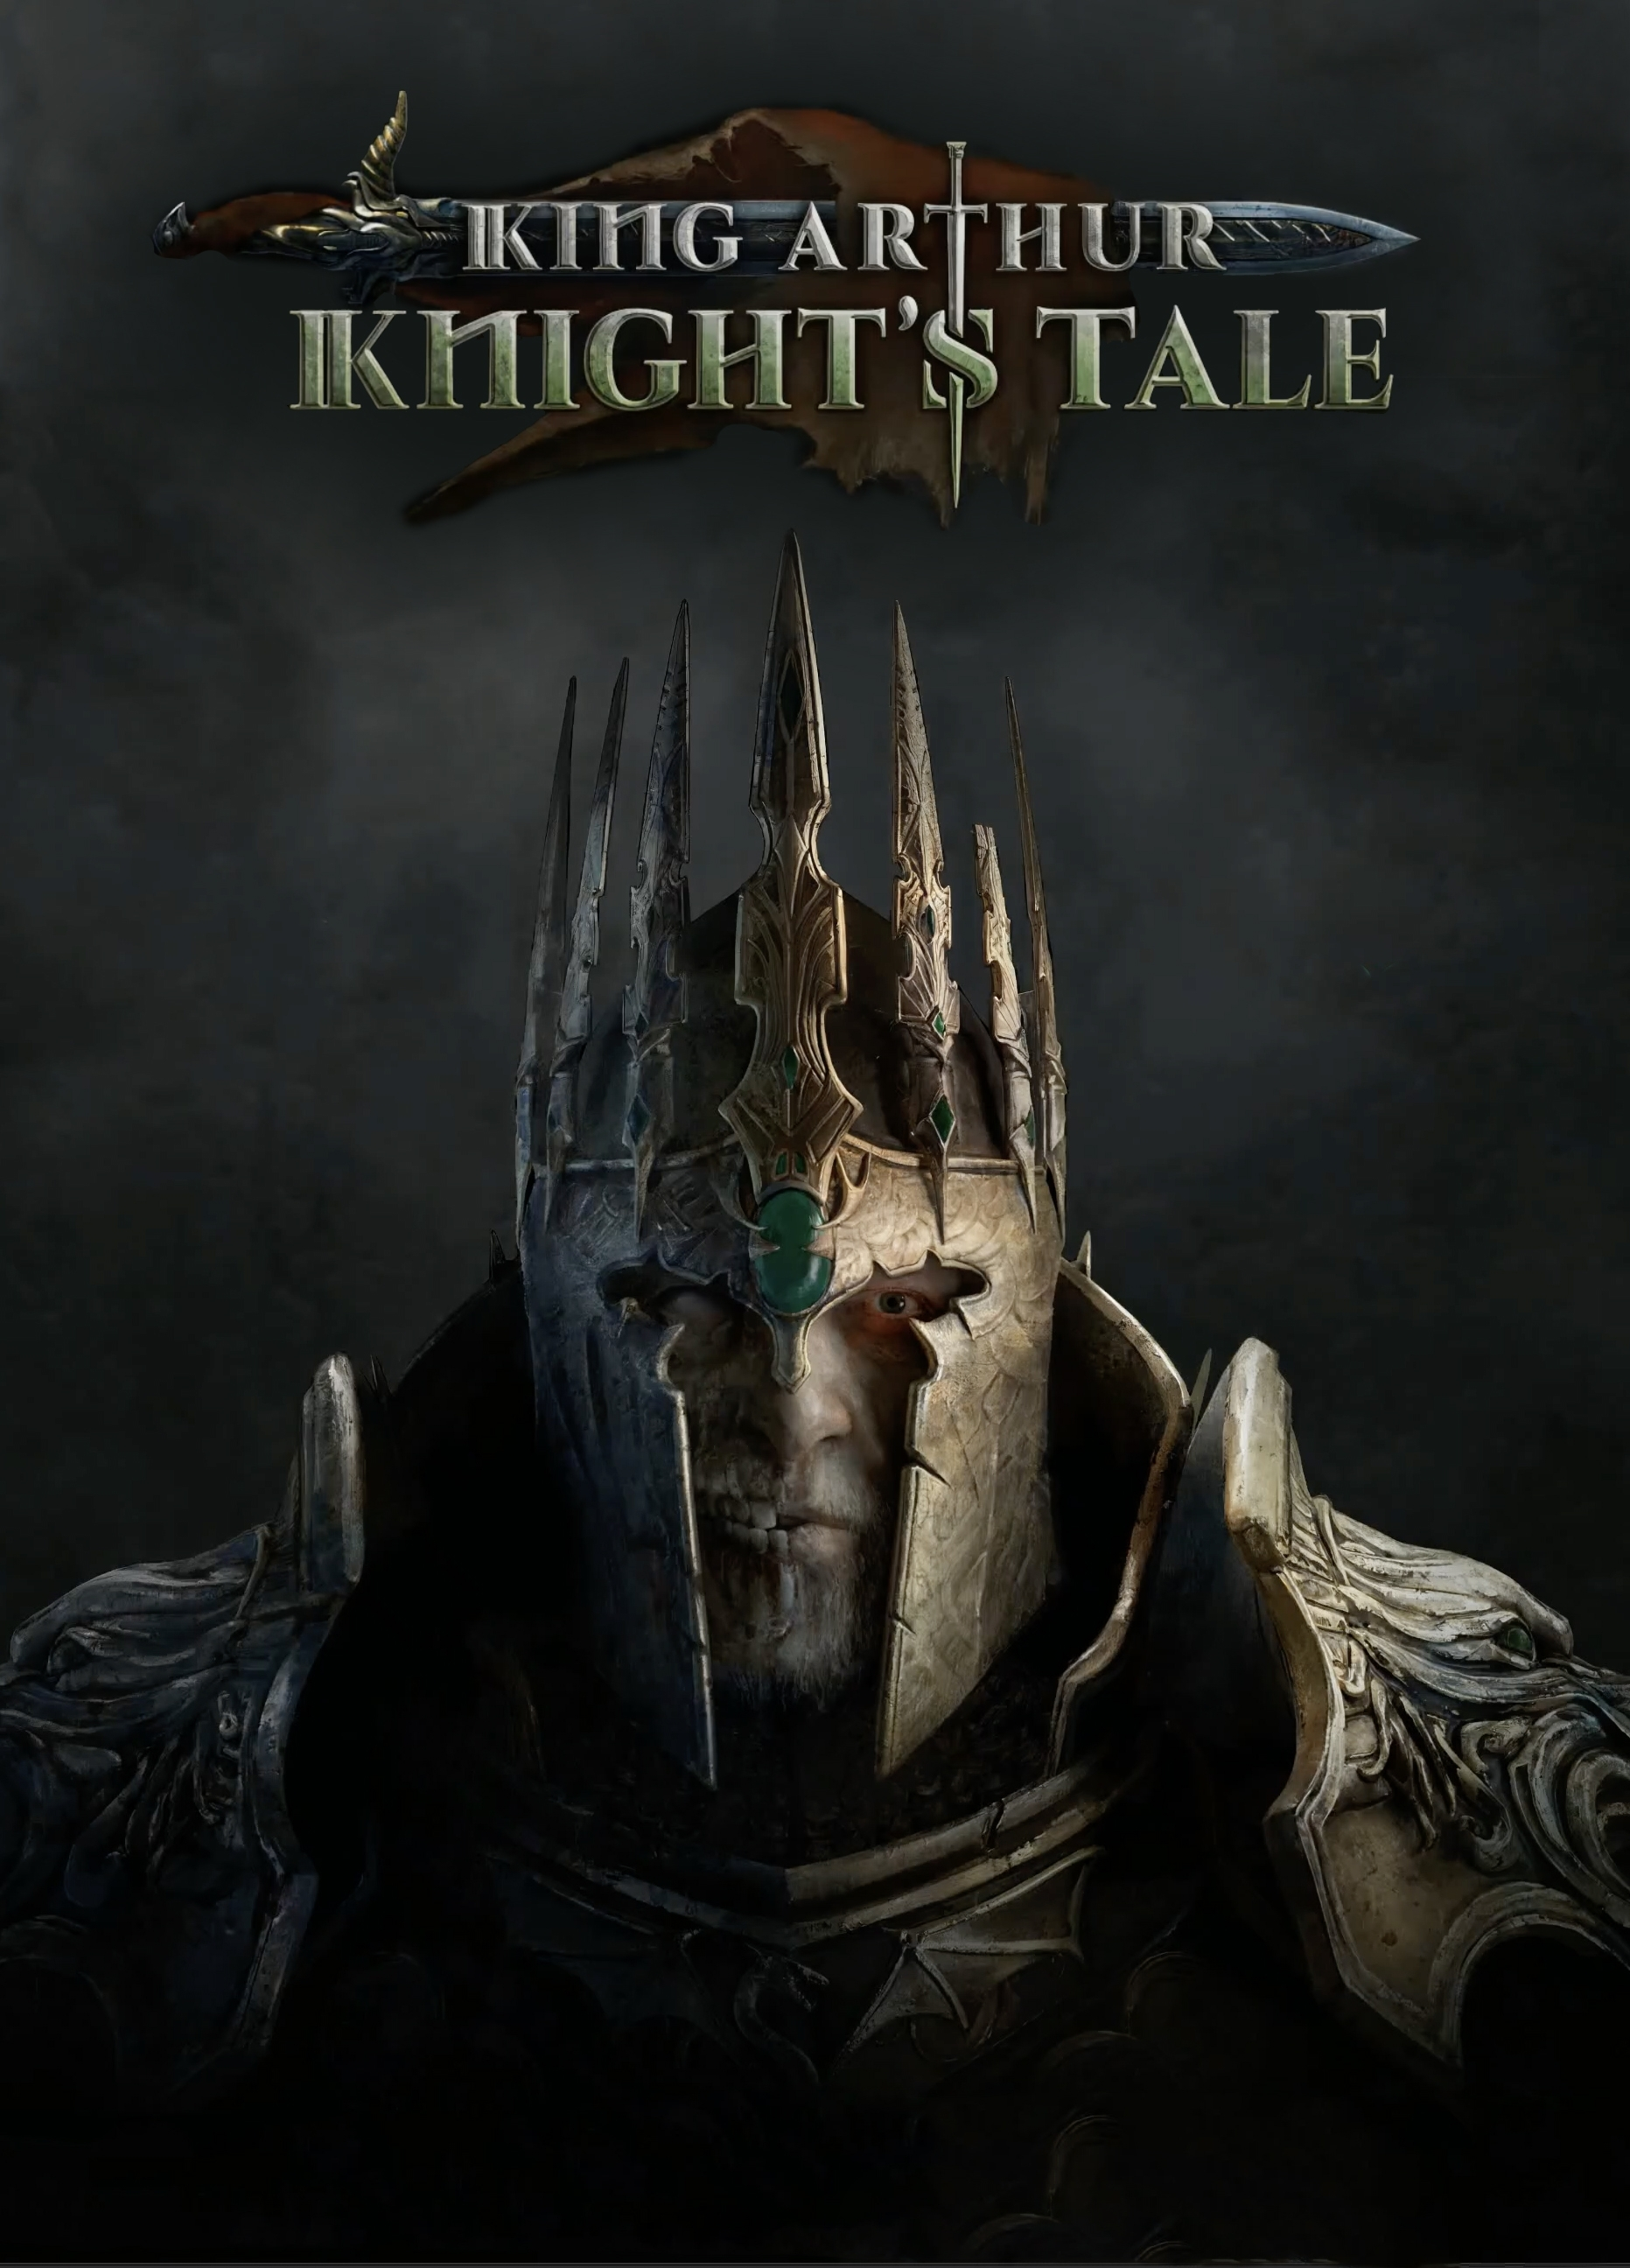 Download King Arthur Knights Tale v0.0.3 Early Access in PC [ Torrent ]